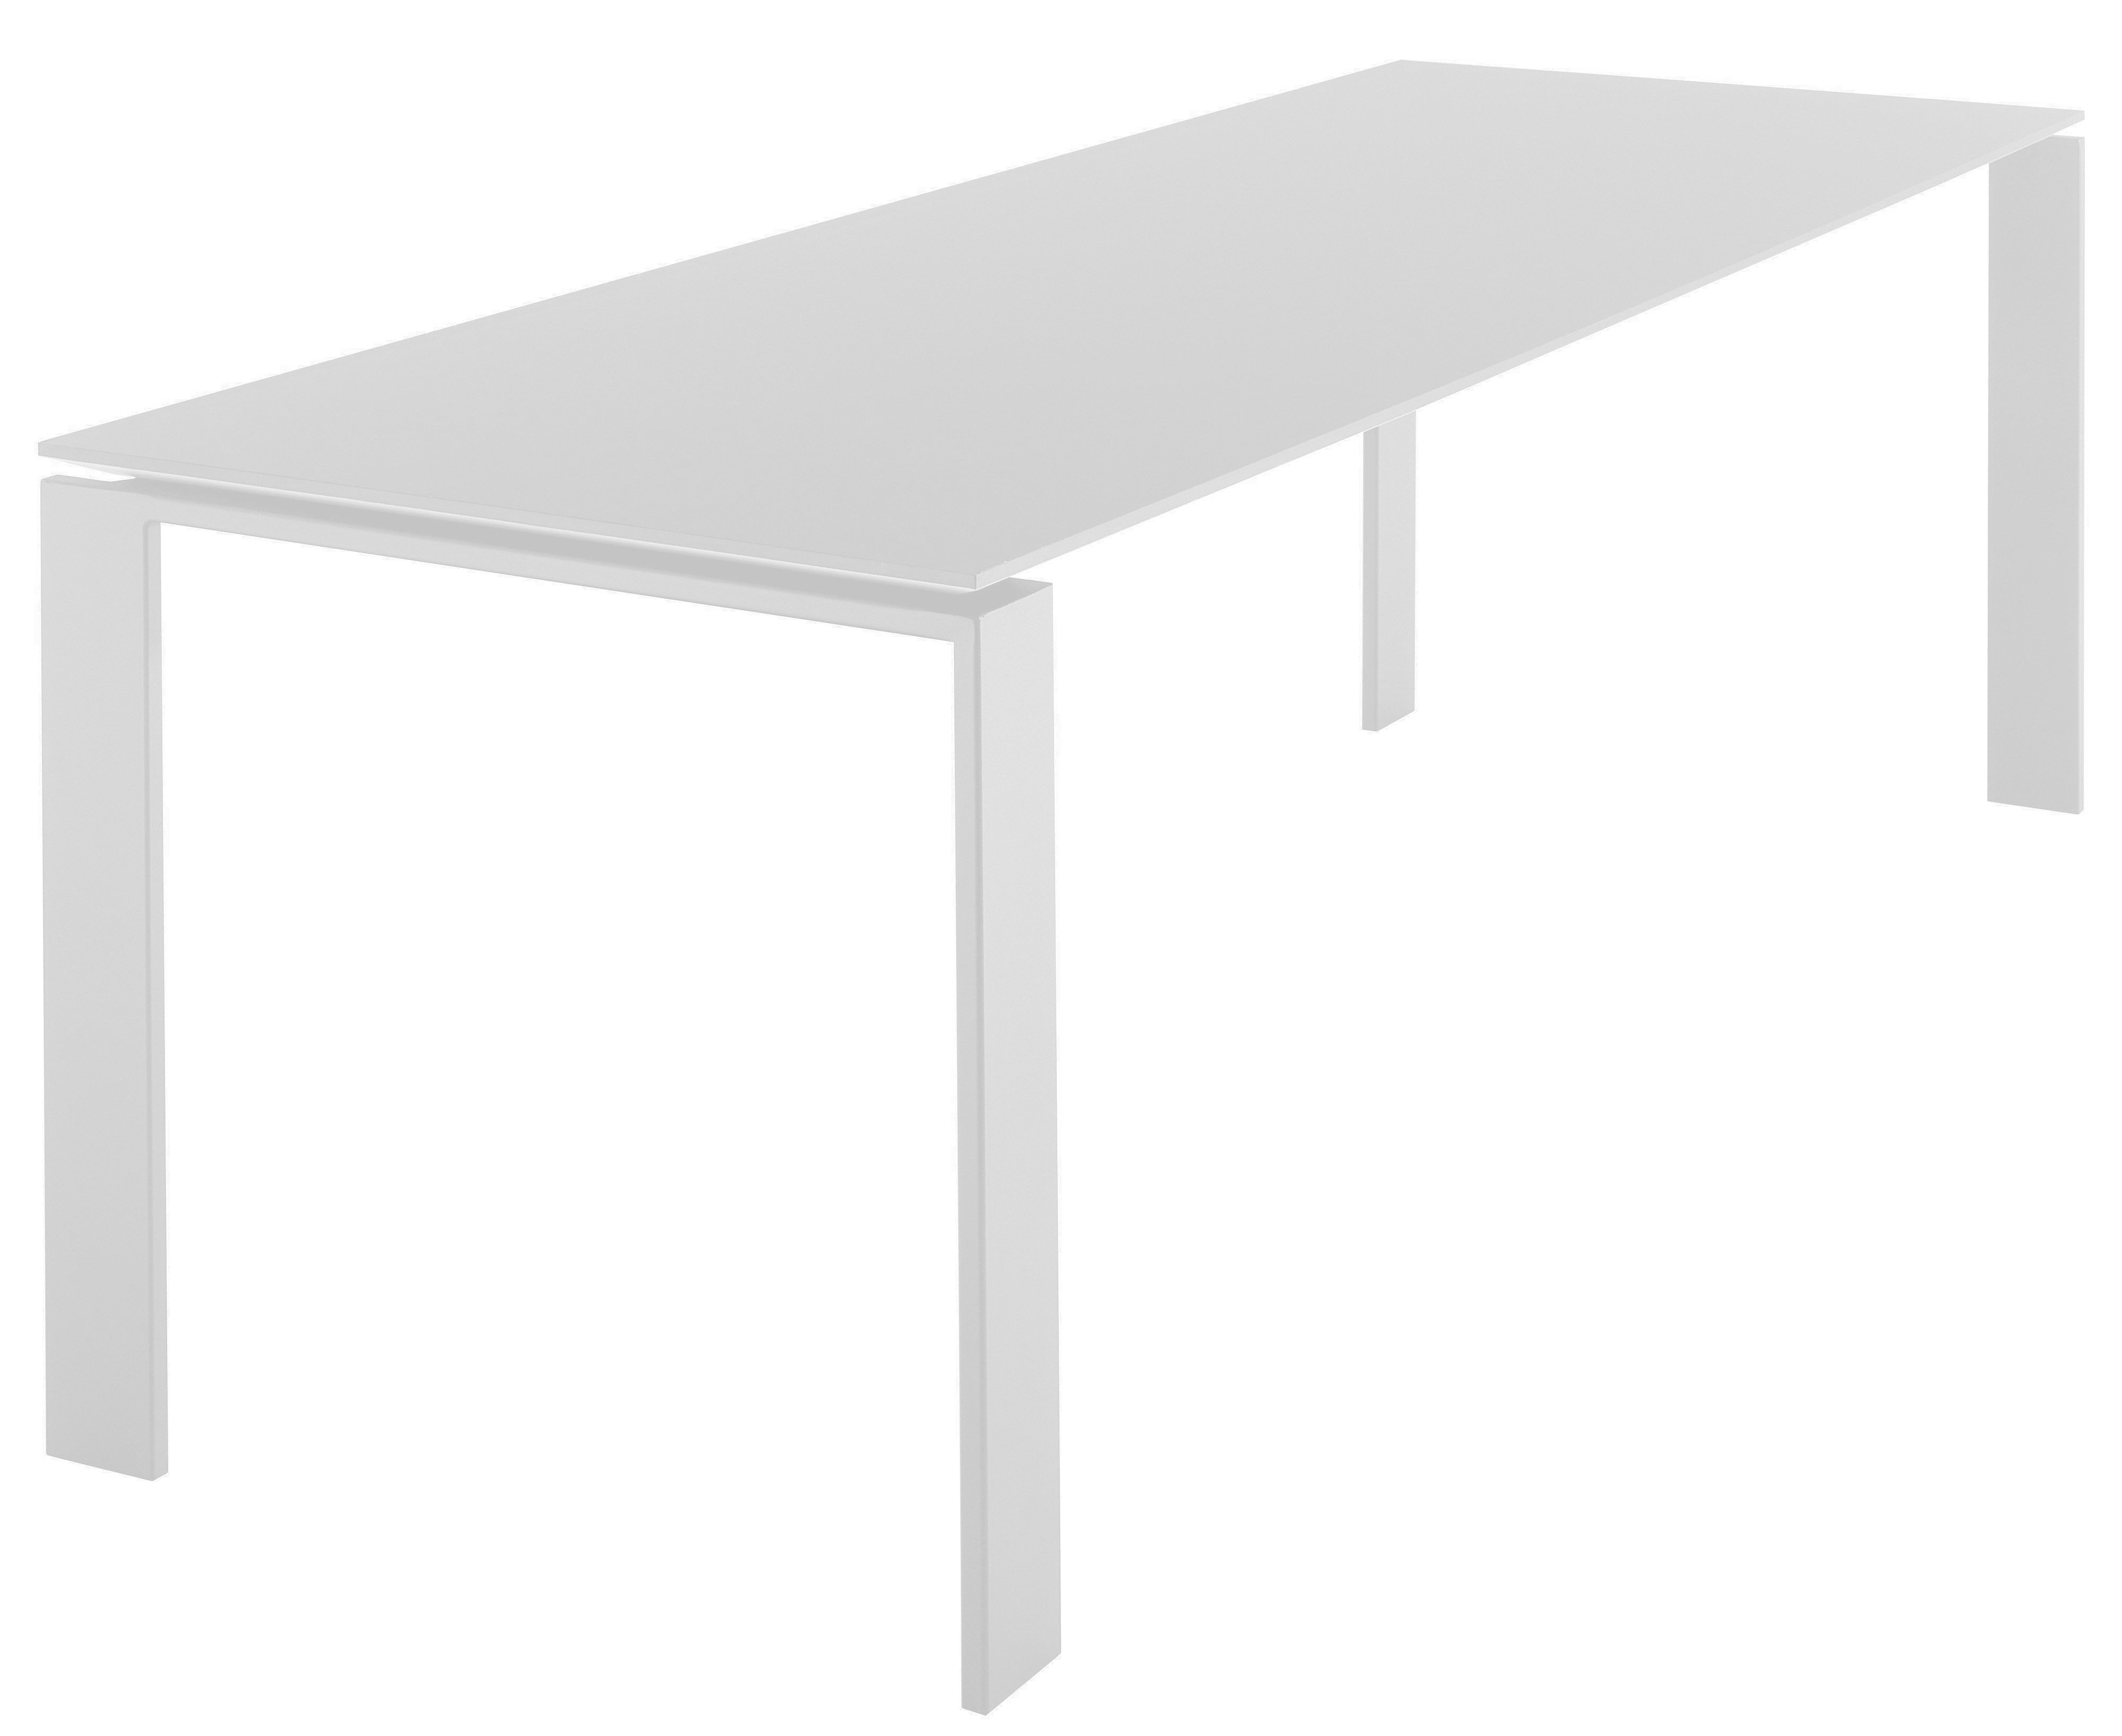 Furniture - Dining Tables - Four Rectangular table - White - L 223 cm by Kartell - 223 cm - Laminate, Varnished steel